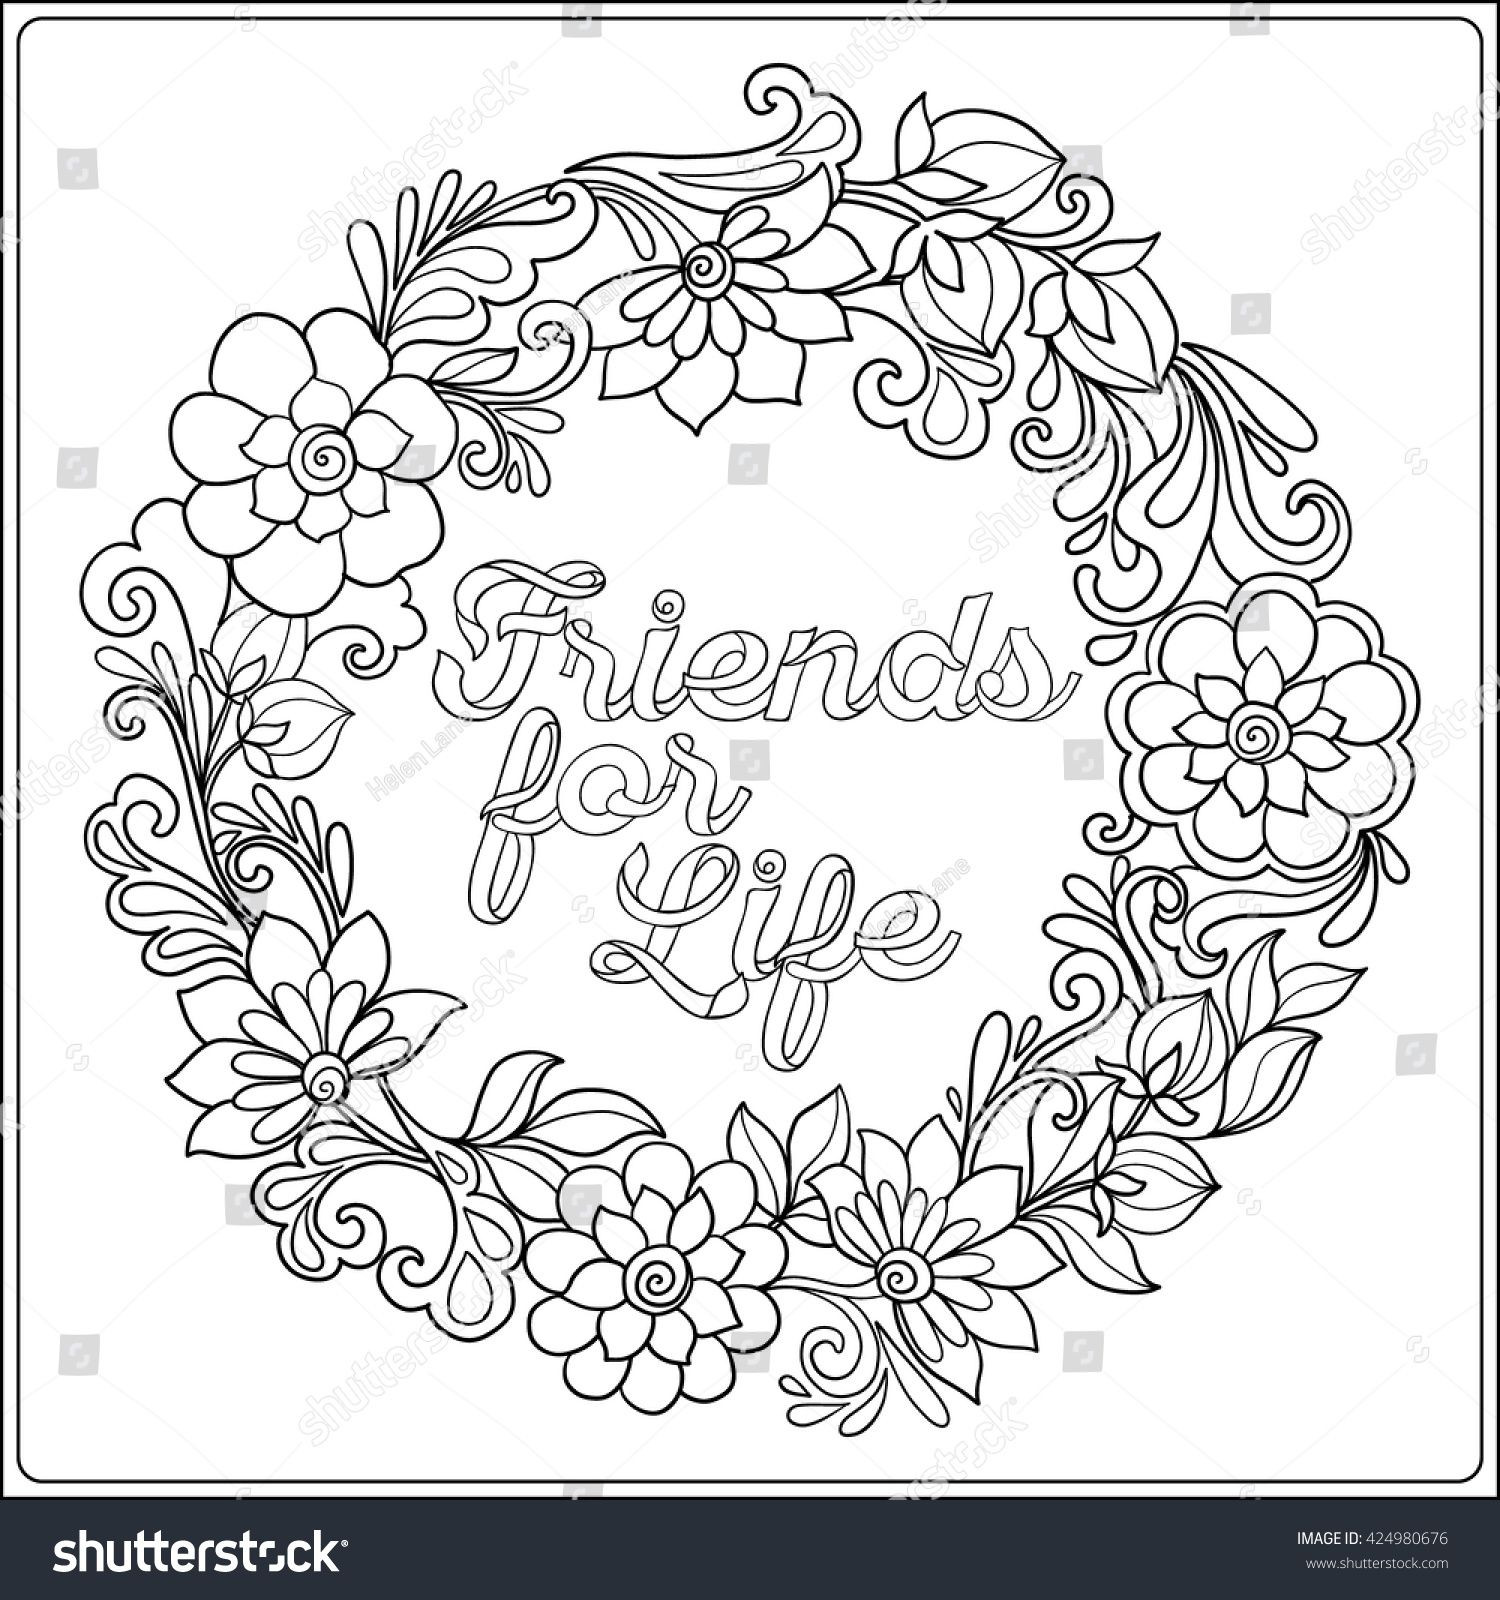 1500x1600 Coloring Pages For Adults Messages Coloring Page With Message